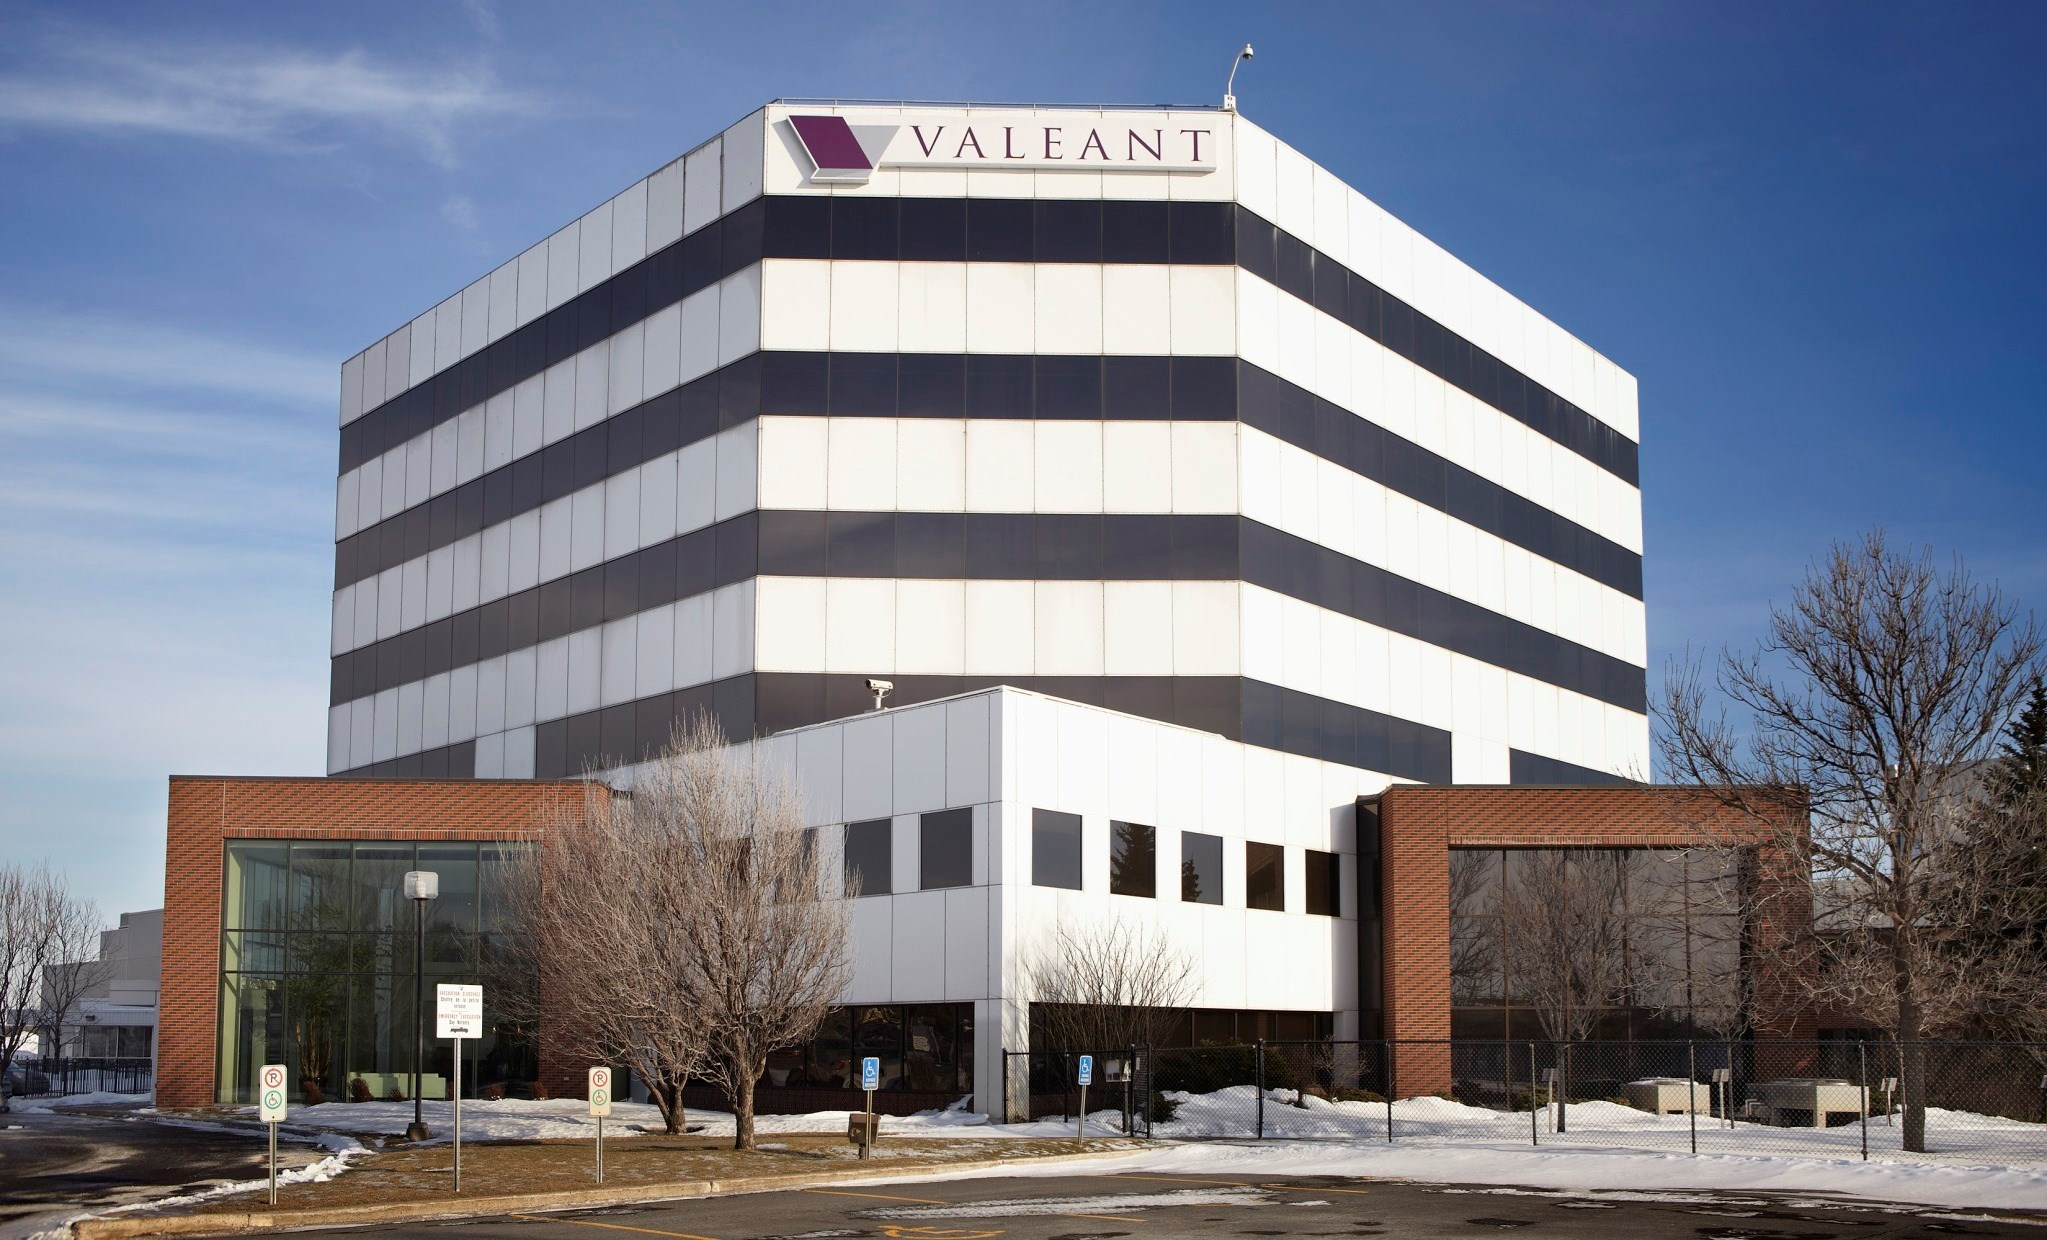 Valeant offers discounts for high-priced heart drugs